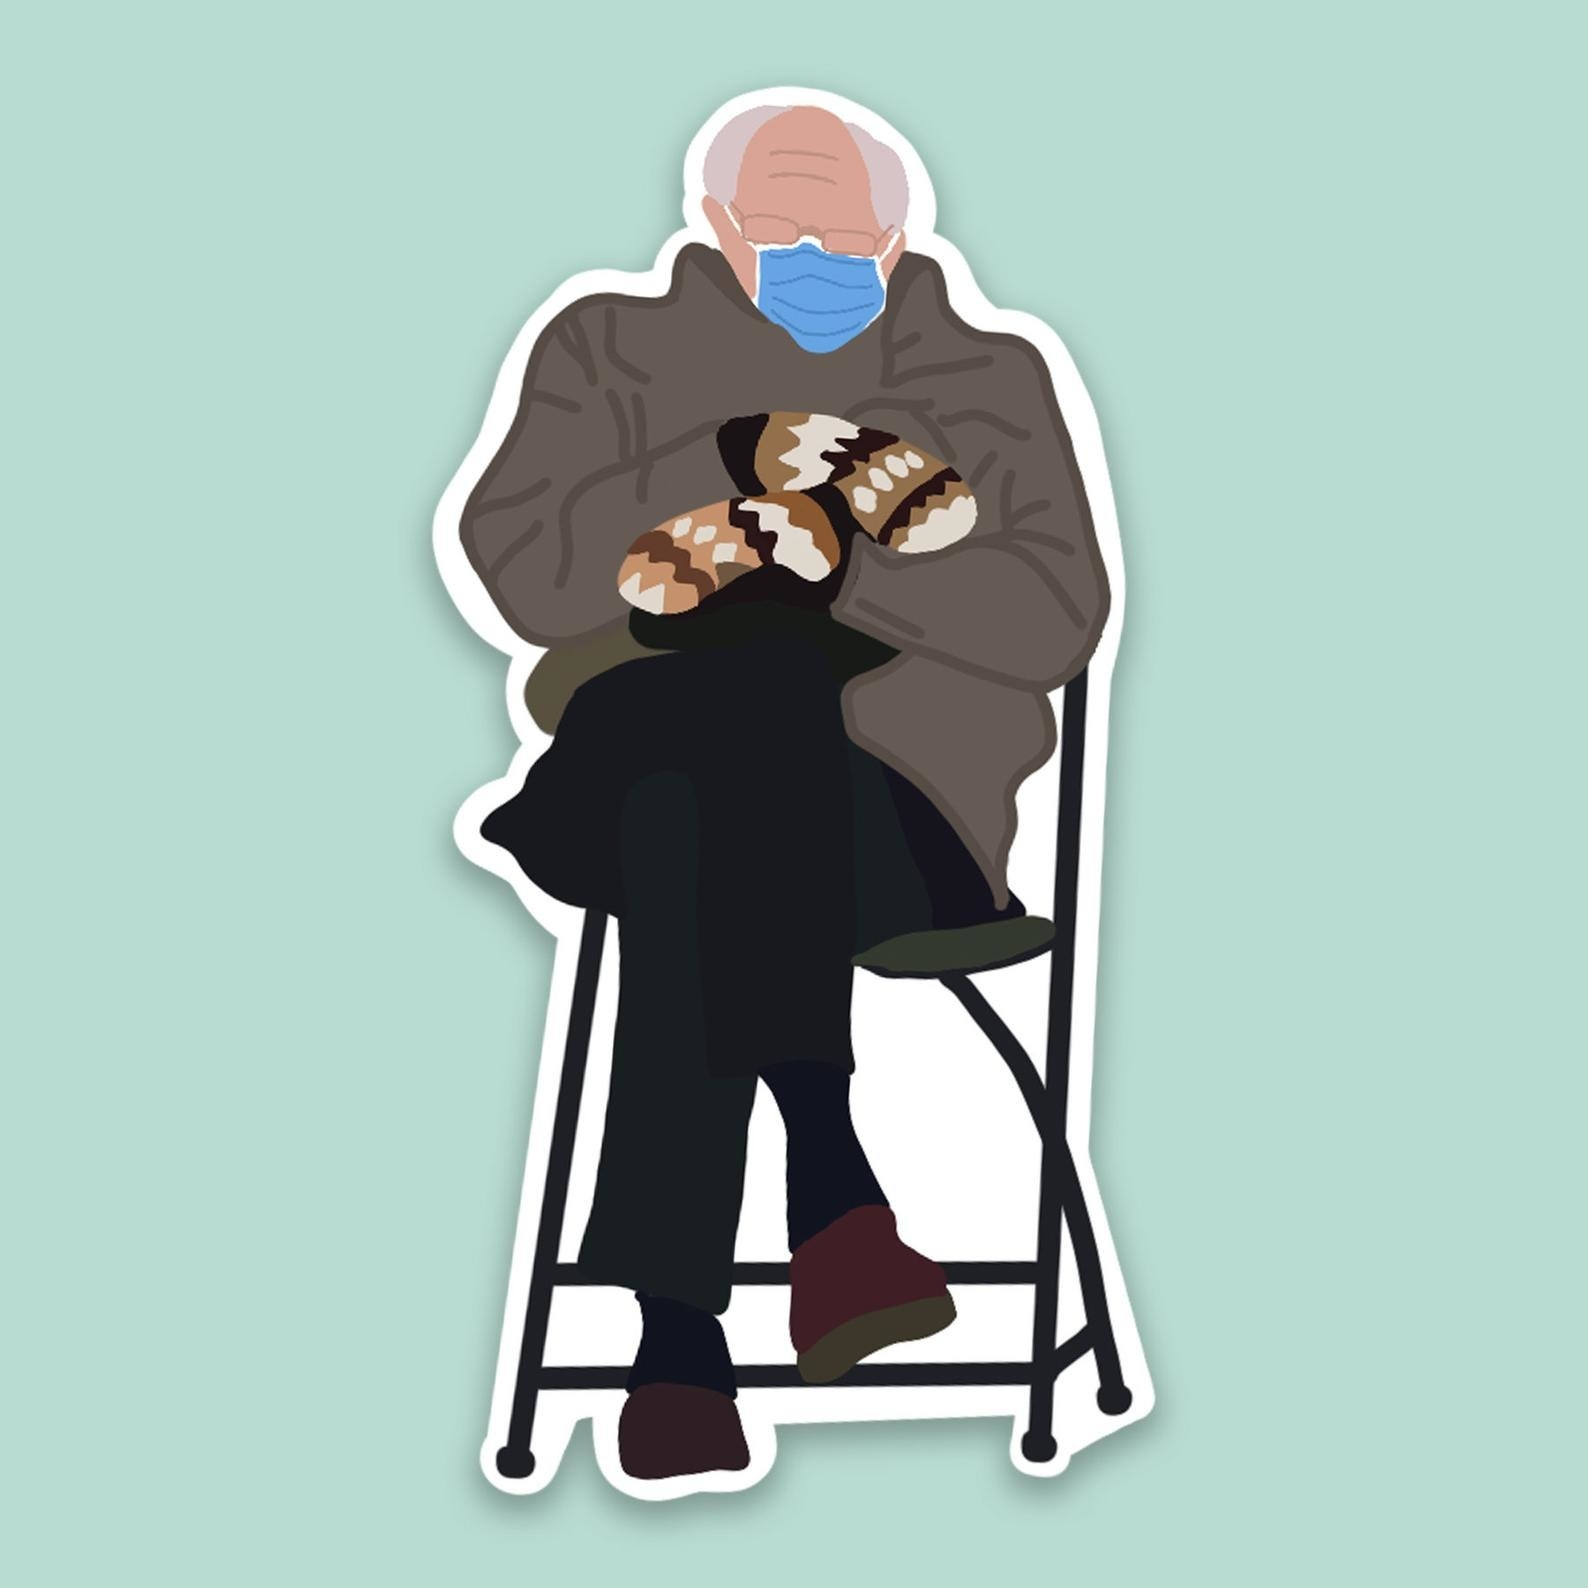 a sticker of the bernie sanders sitting on a chair meme